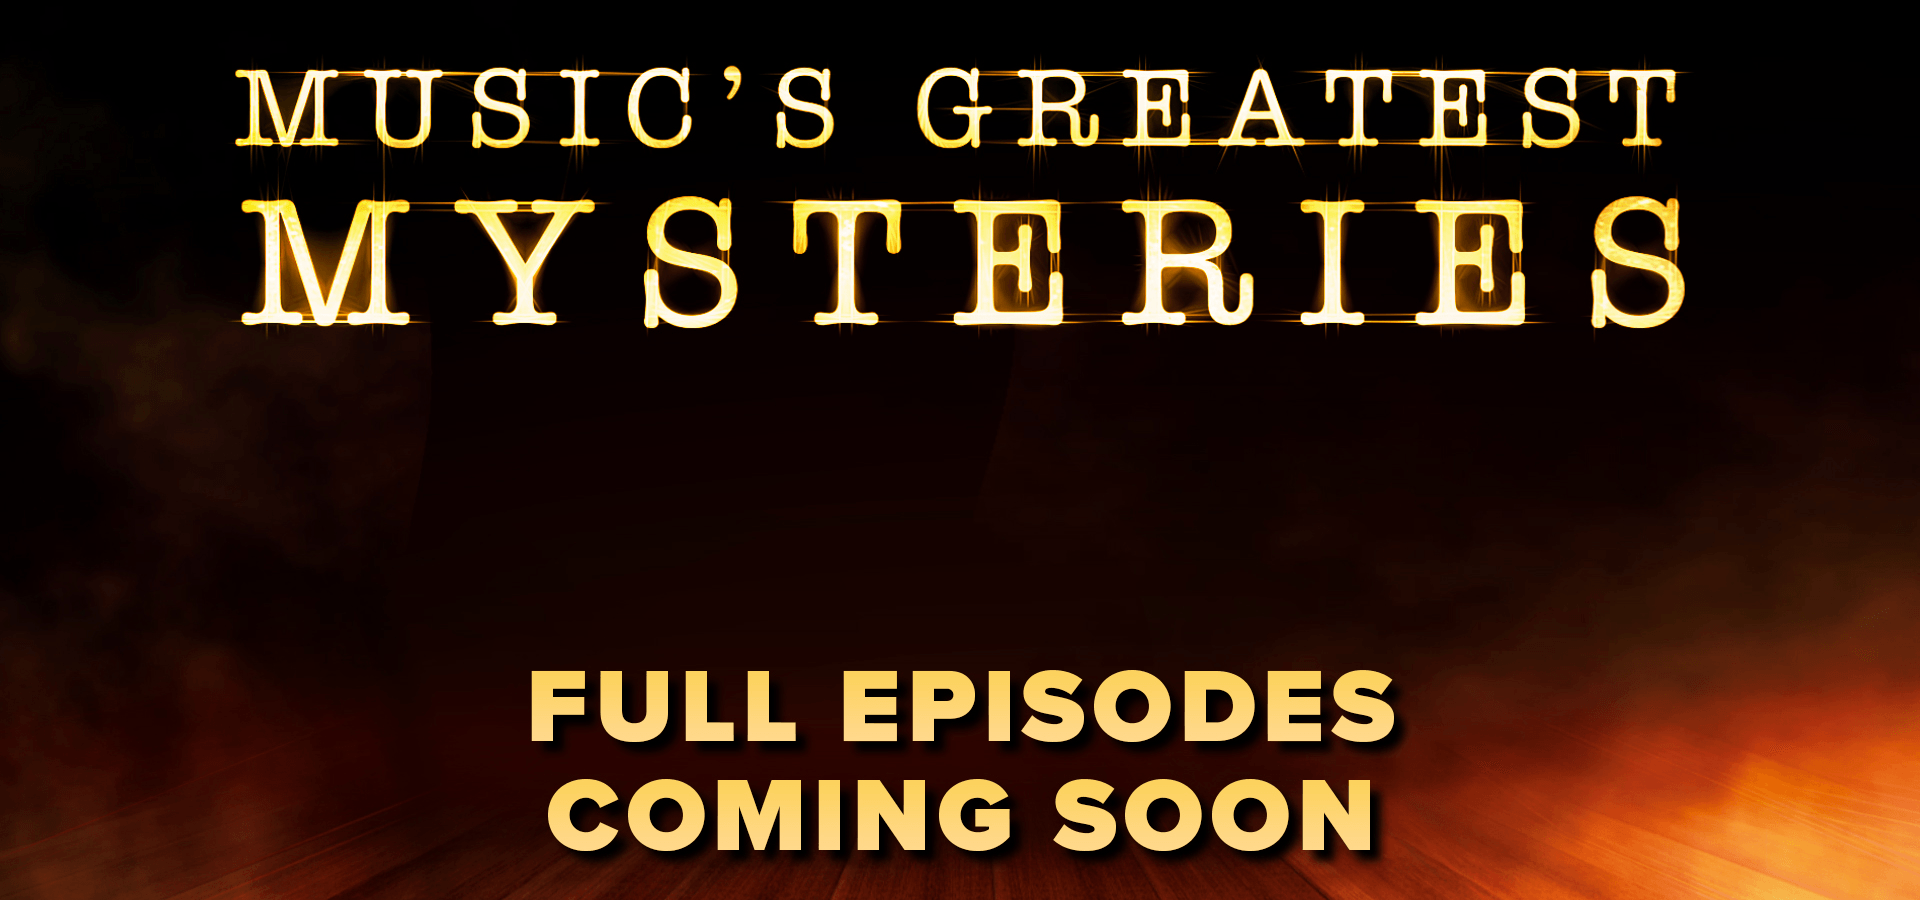 STREAMING SOON Music's Greatest Mysteries